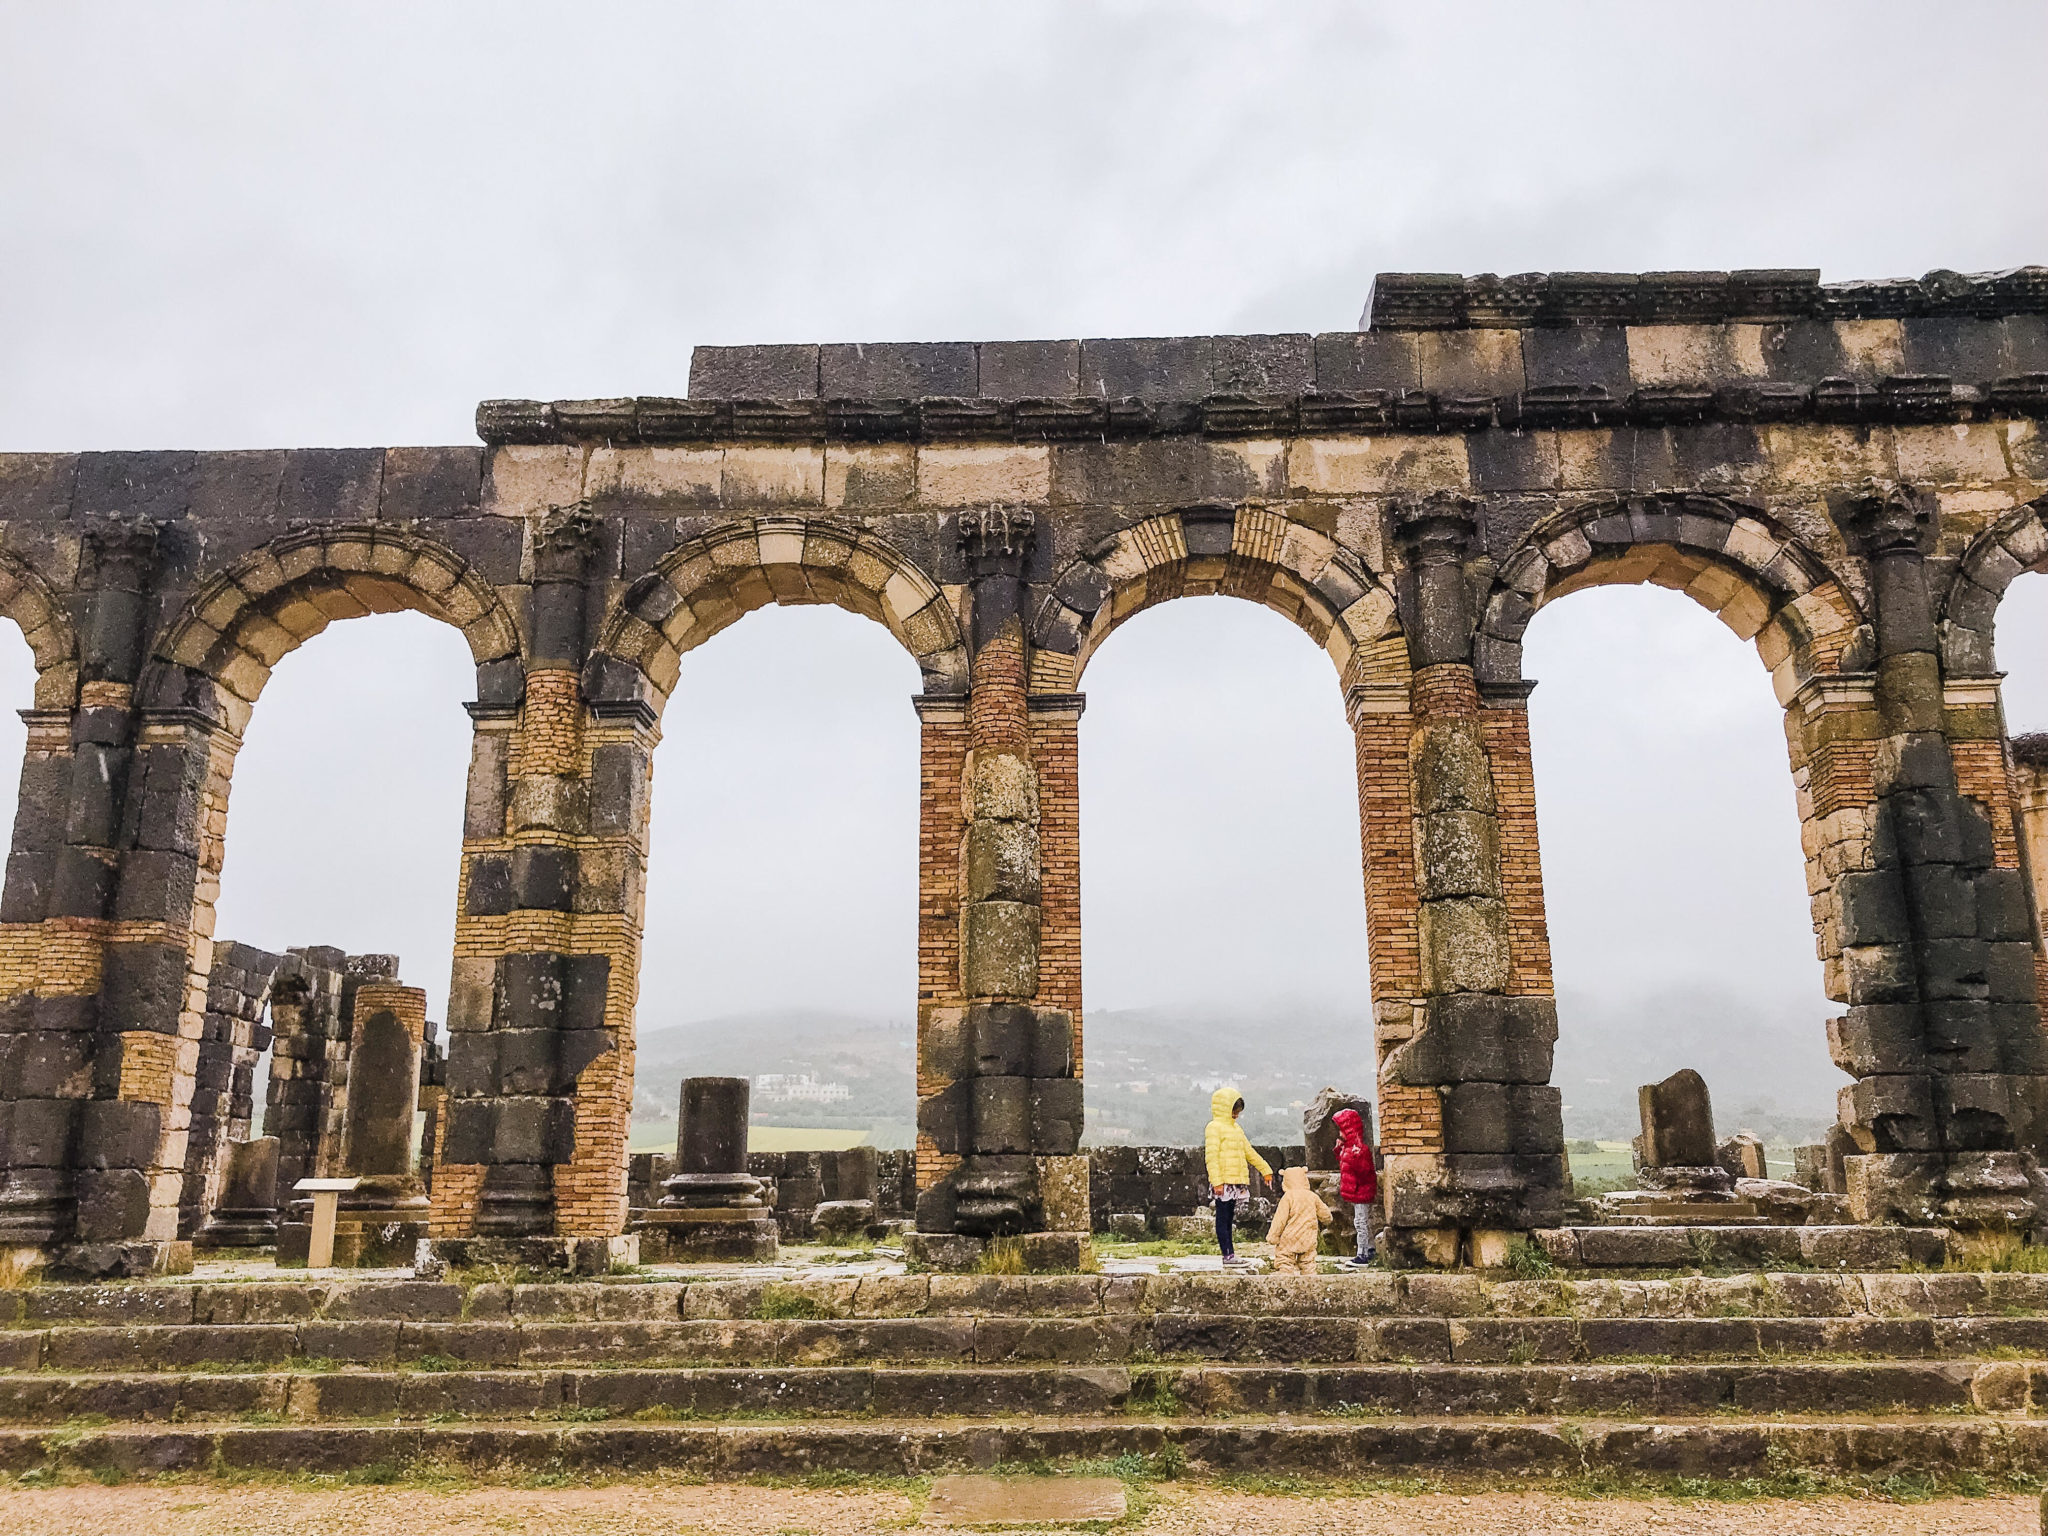 volubilis morocco family holiday | 7 Reasons to Take a Morocco Family Vacation by popular Northern California travel blog, Local Passport Family: image of children playing in building ruins at Volubilis Morocco.